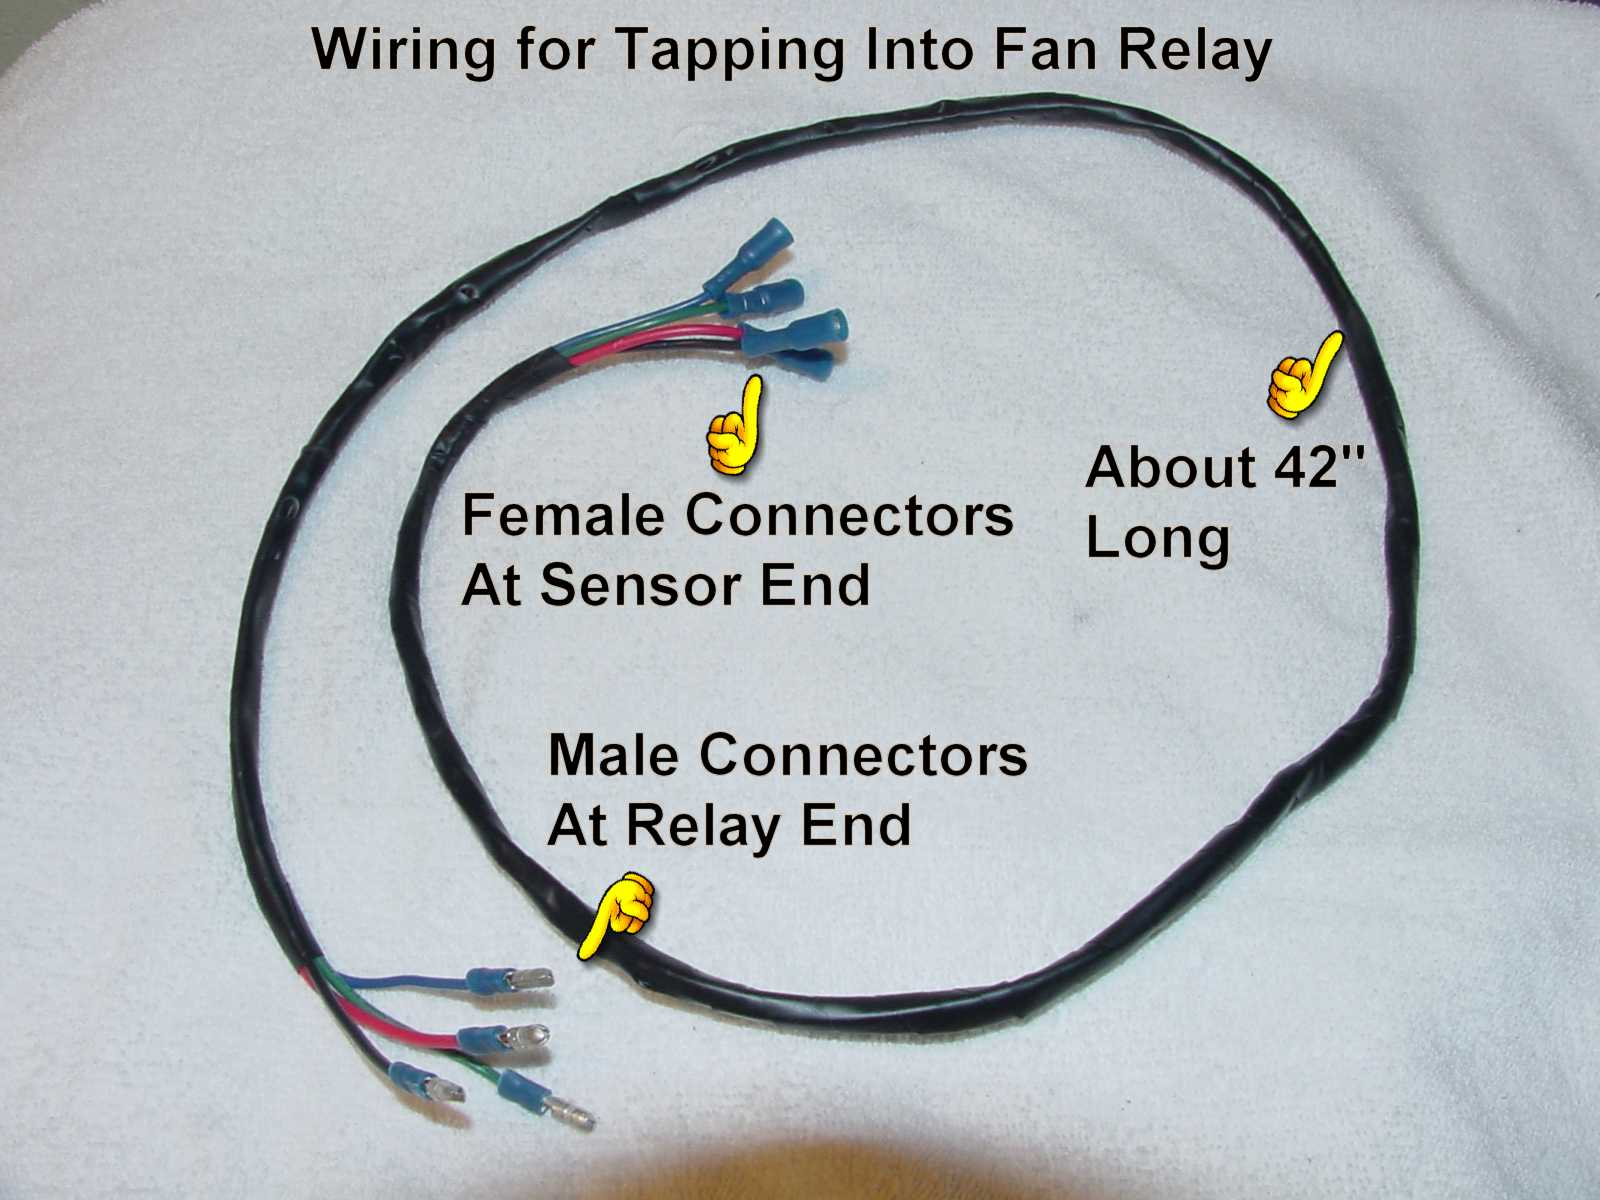 water temperature gauge ls1 fan relay wiring diagram overheating fazer (fzs) 1000 fazer